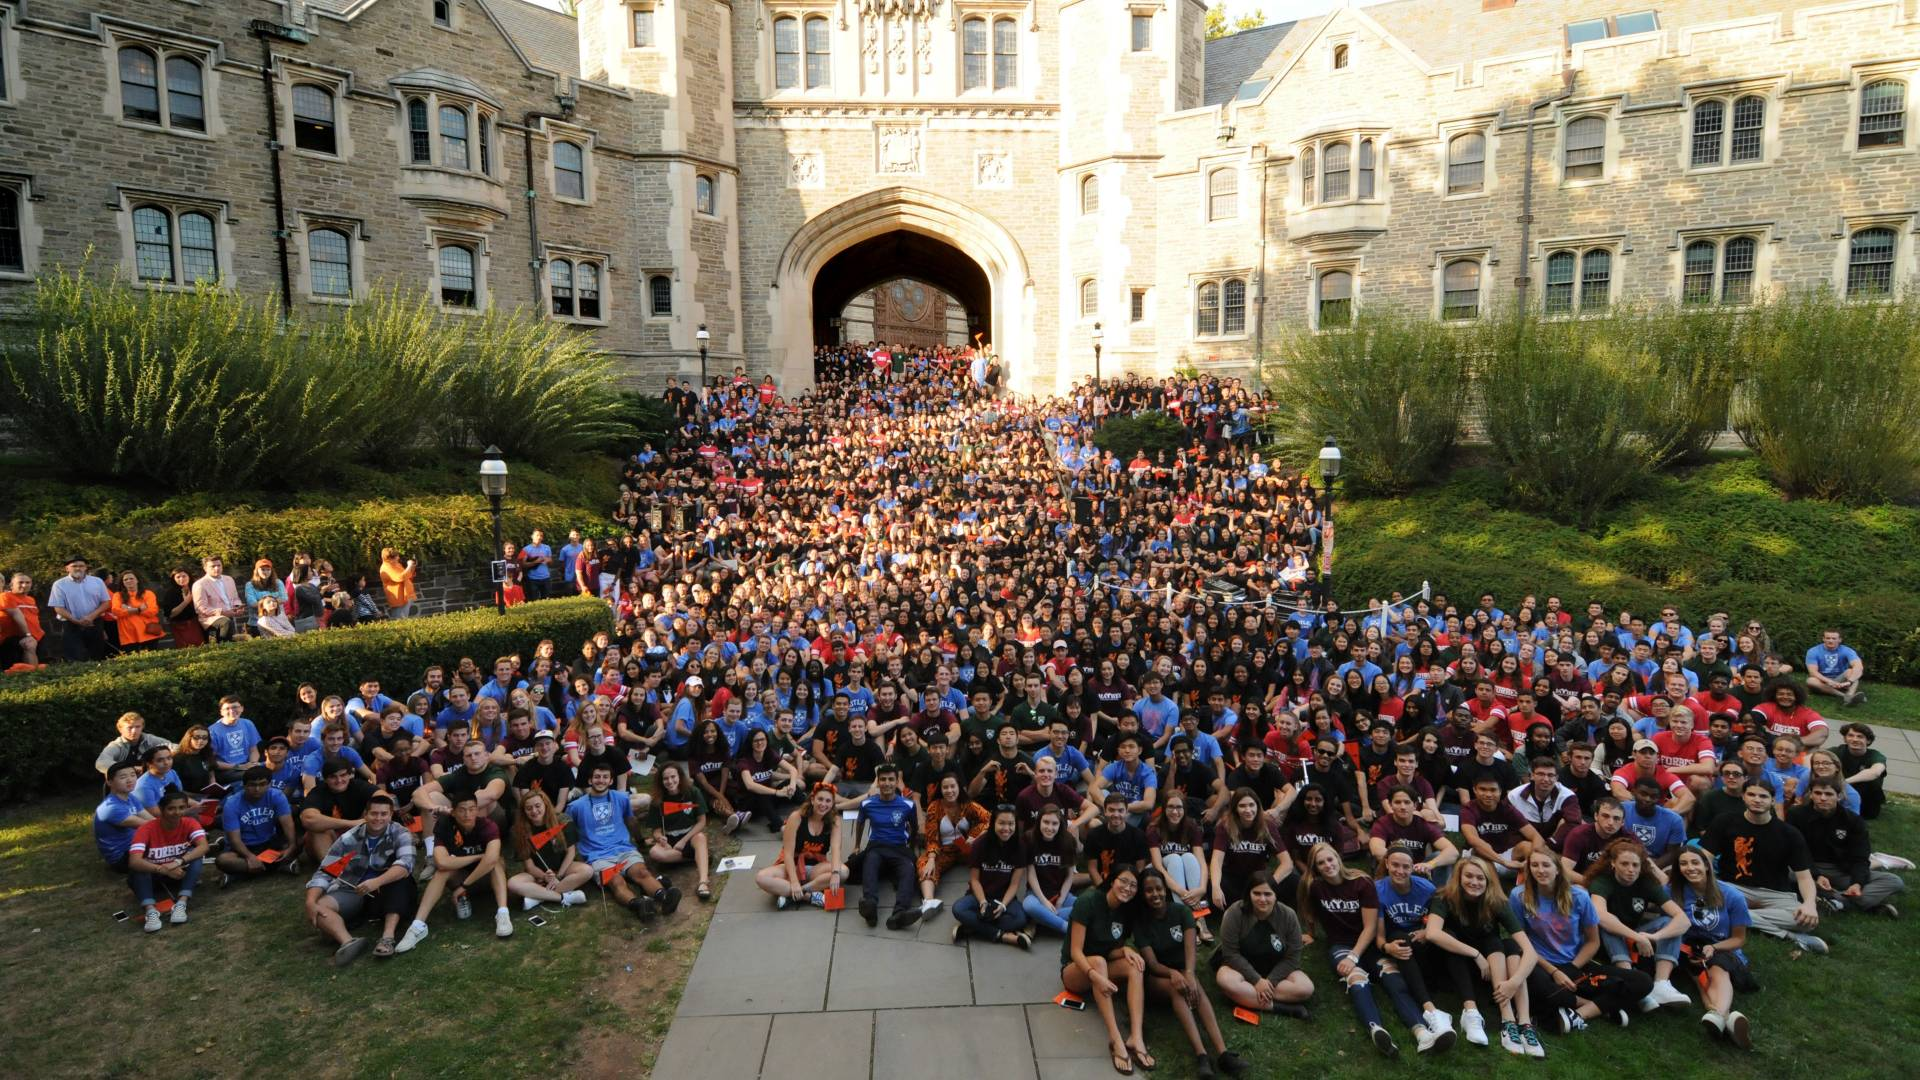 For the tenth straight year, Princeton tops the National University list